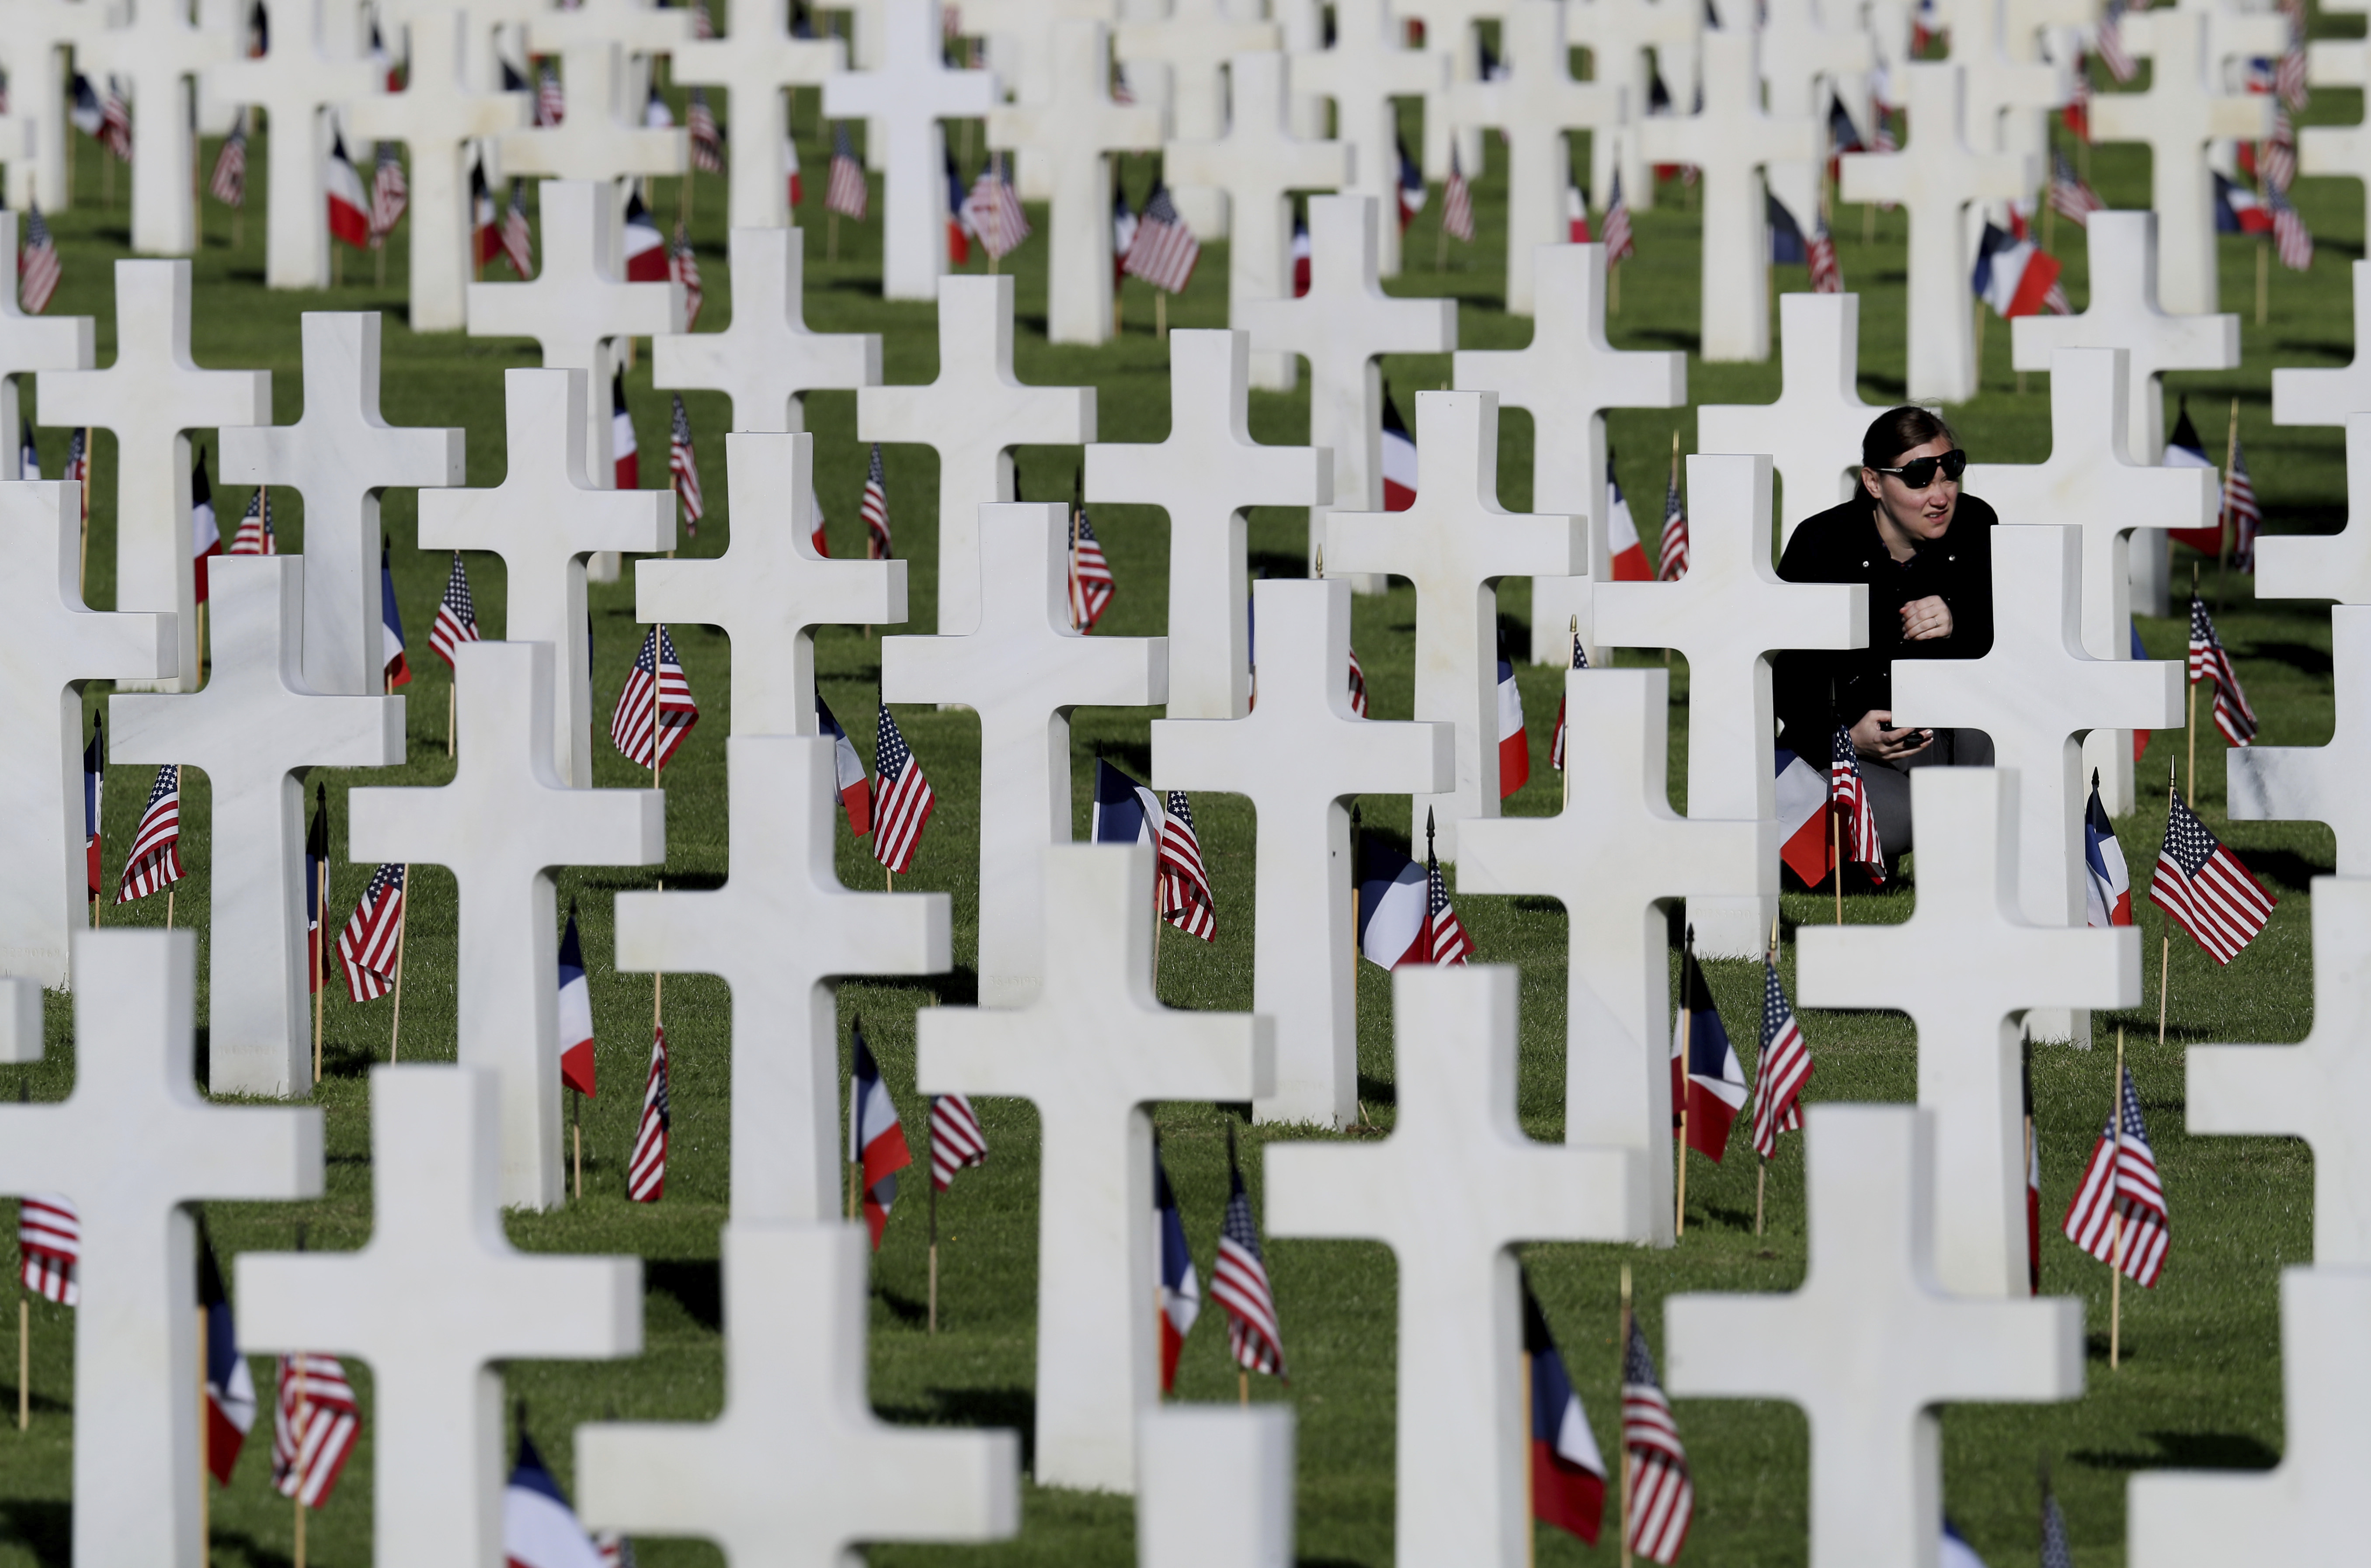 A young woman visits headstones of World War II soldiers prior to a ceremony to mark the 75th anniversary of D-Day at the Normandy American Cemetery in Colleville-sur-Mer, Normandy, France, Thursday, June 6, 2019. (David Vincent, Associated Press)